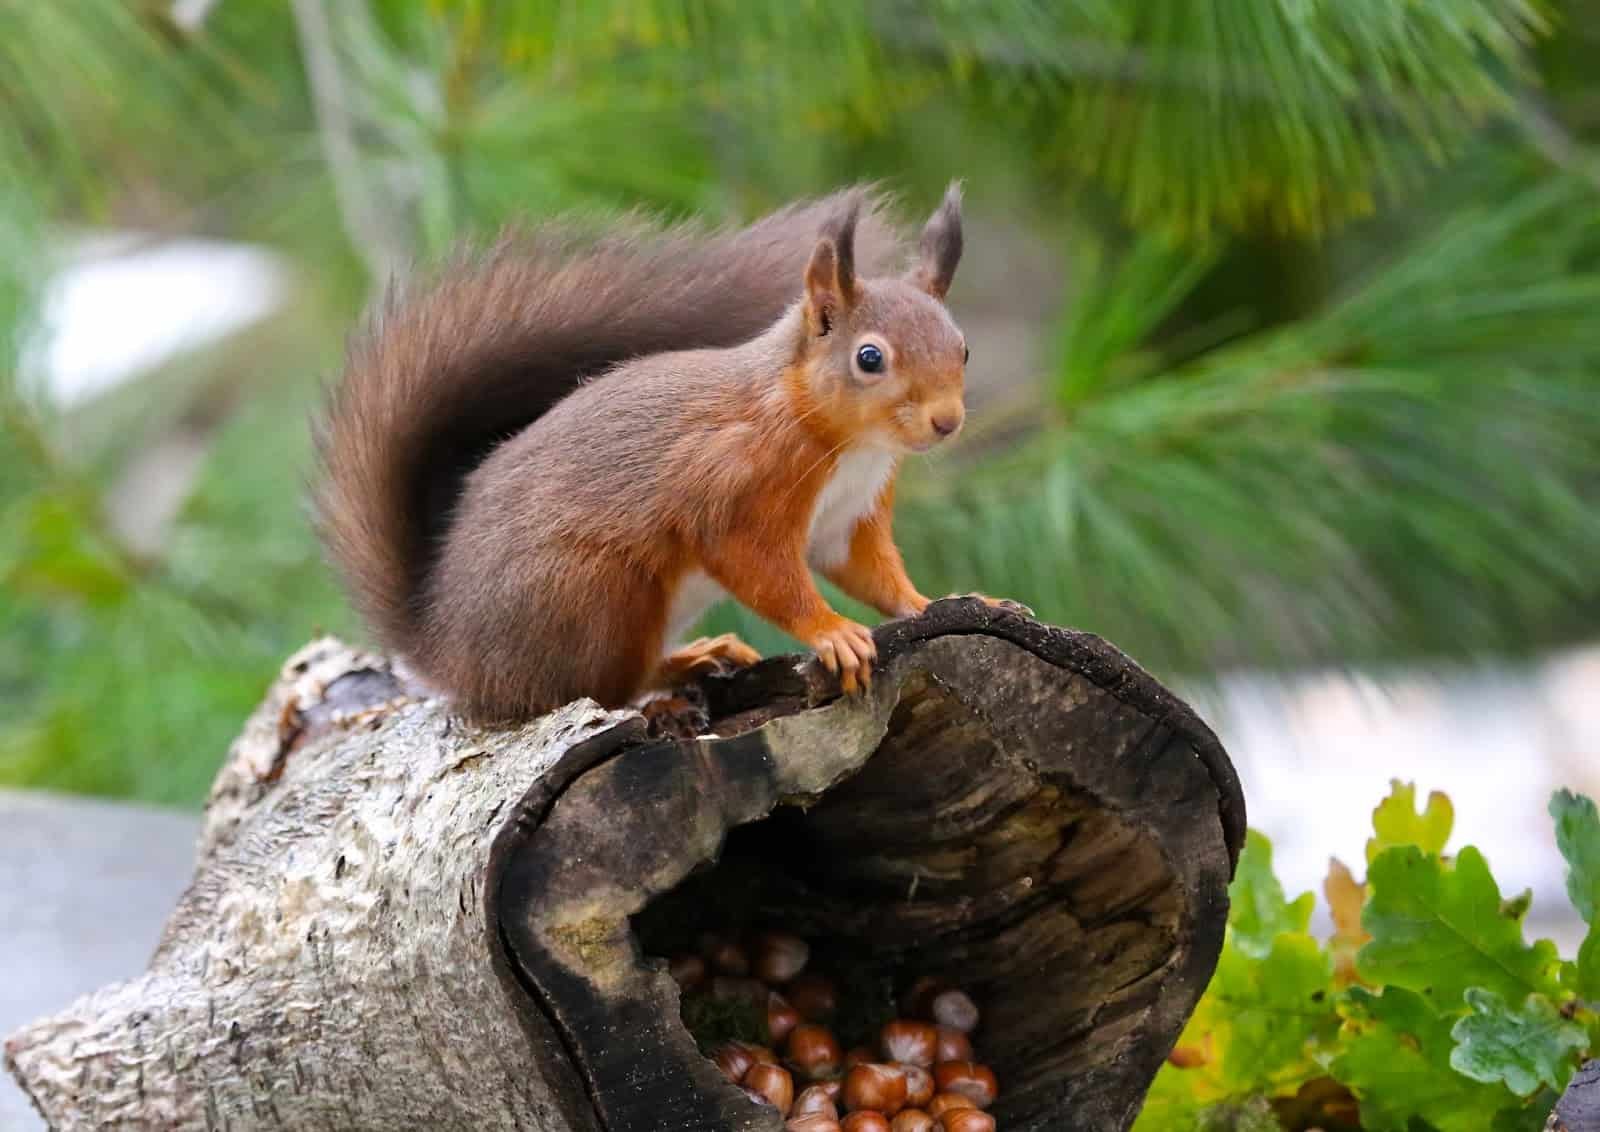 I think that this is a Red Squirrel from Great Britain, but you get the idea...